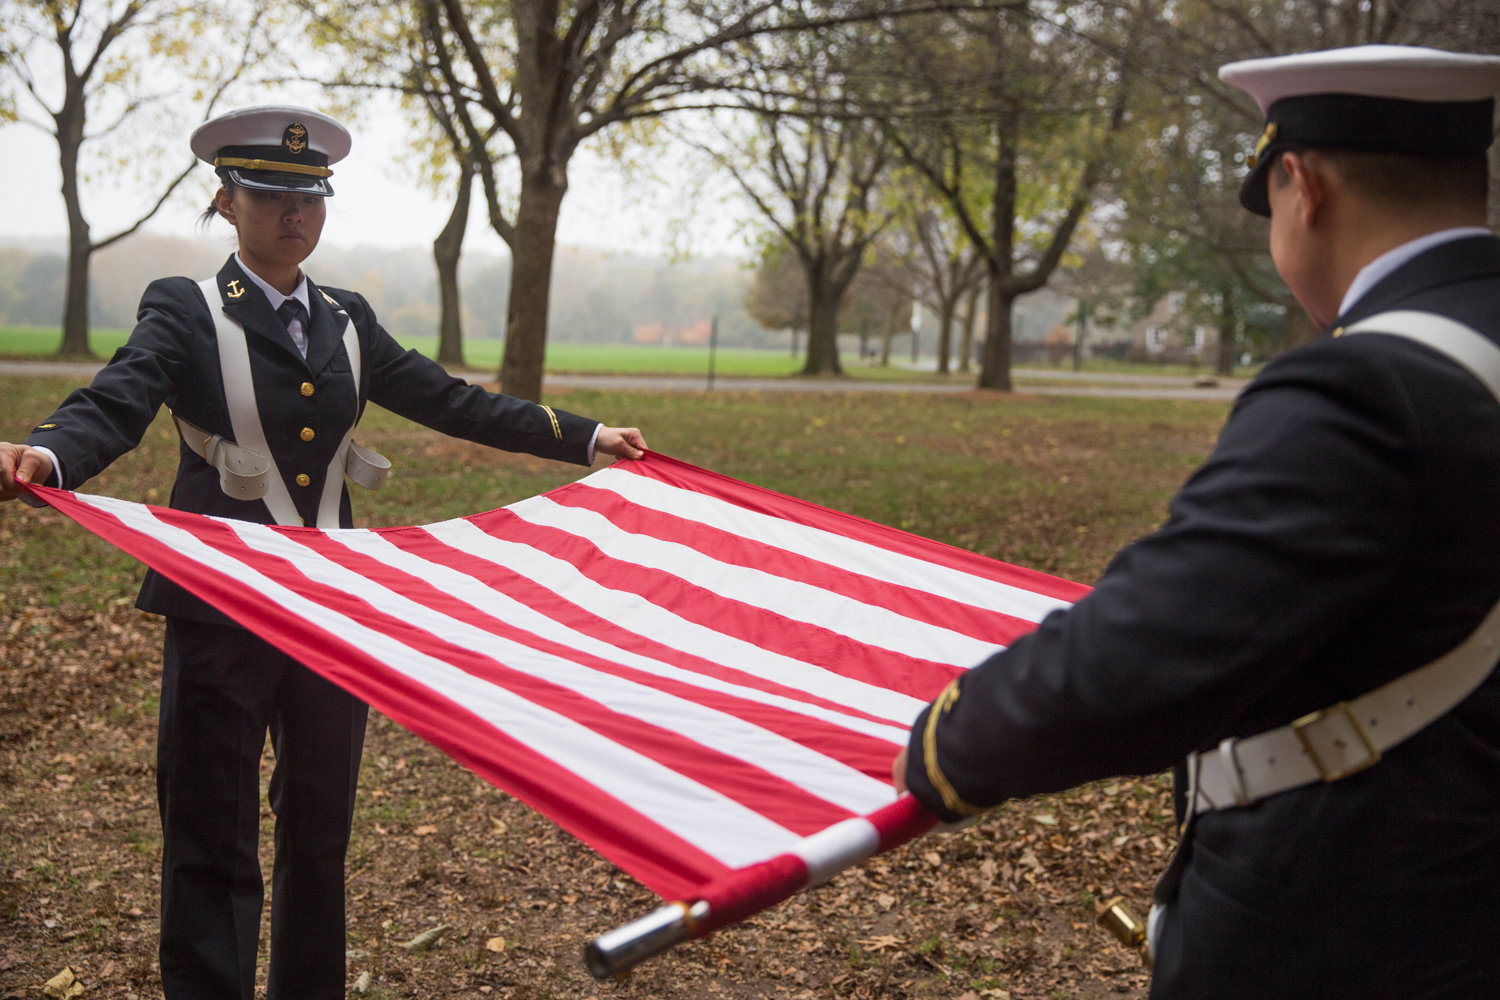 Members of the SUNY Maritime College Color Guard roll the flags after the presentation of colors at a Veterans Day ceremony at Memorial Grove in 2017.